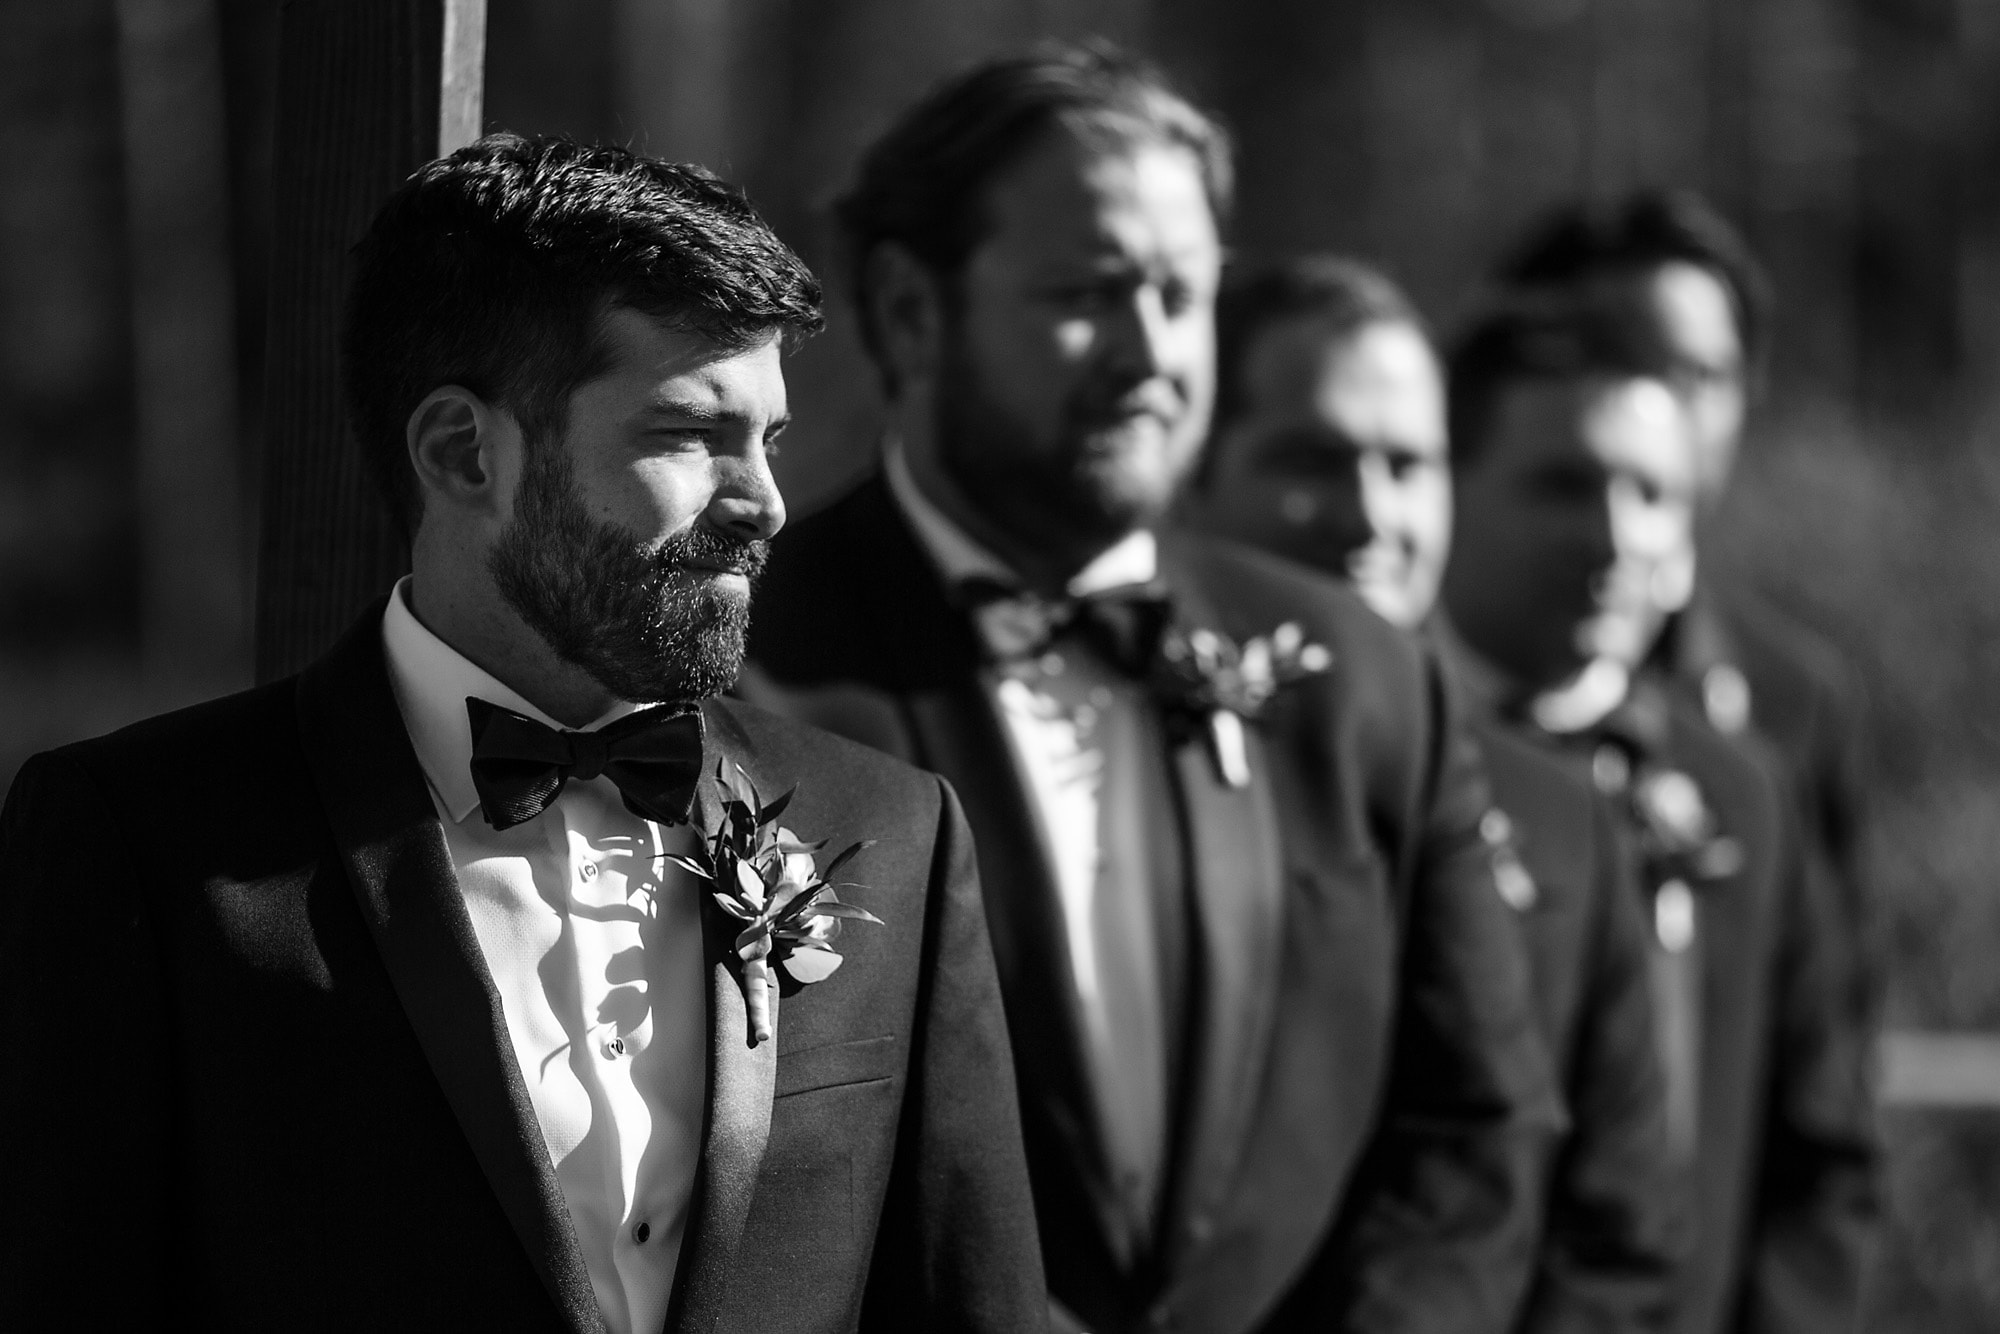 The groom sees his bride walk down the aisle.